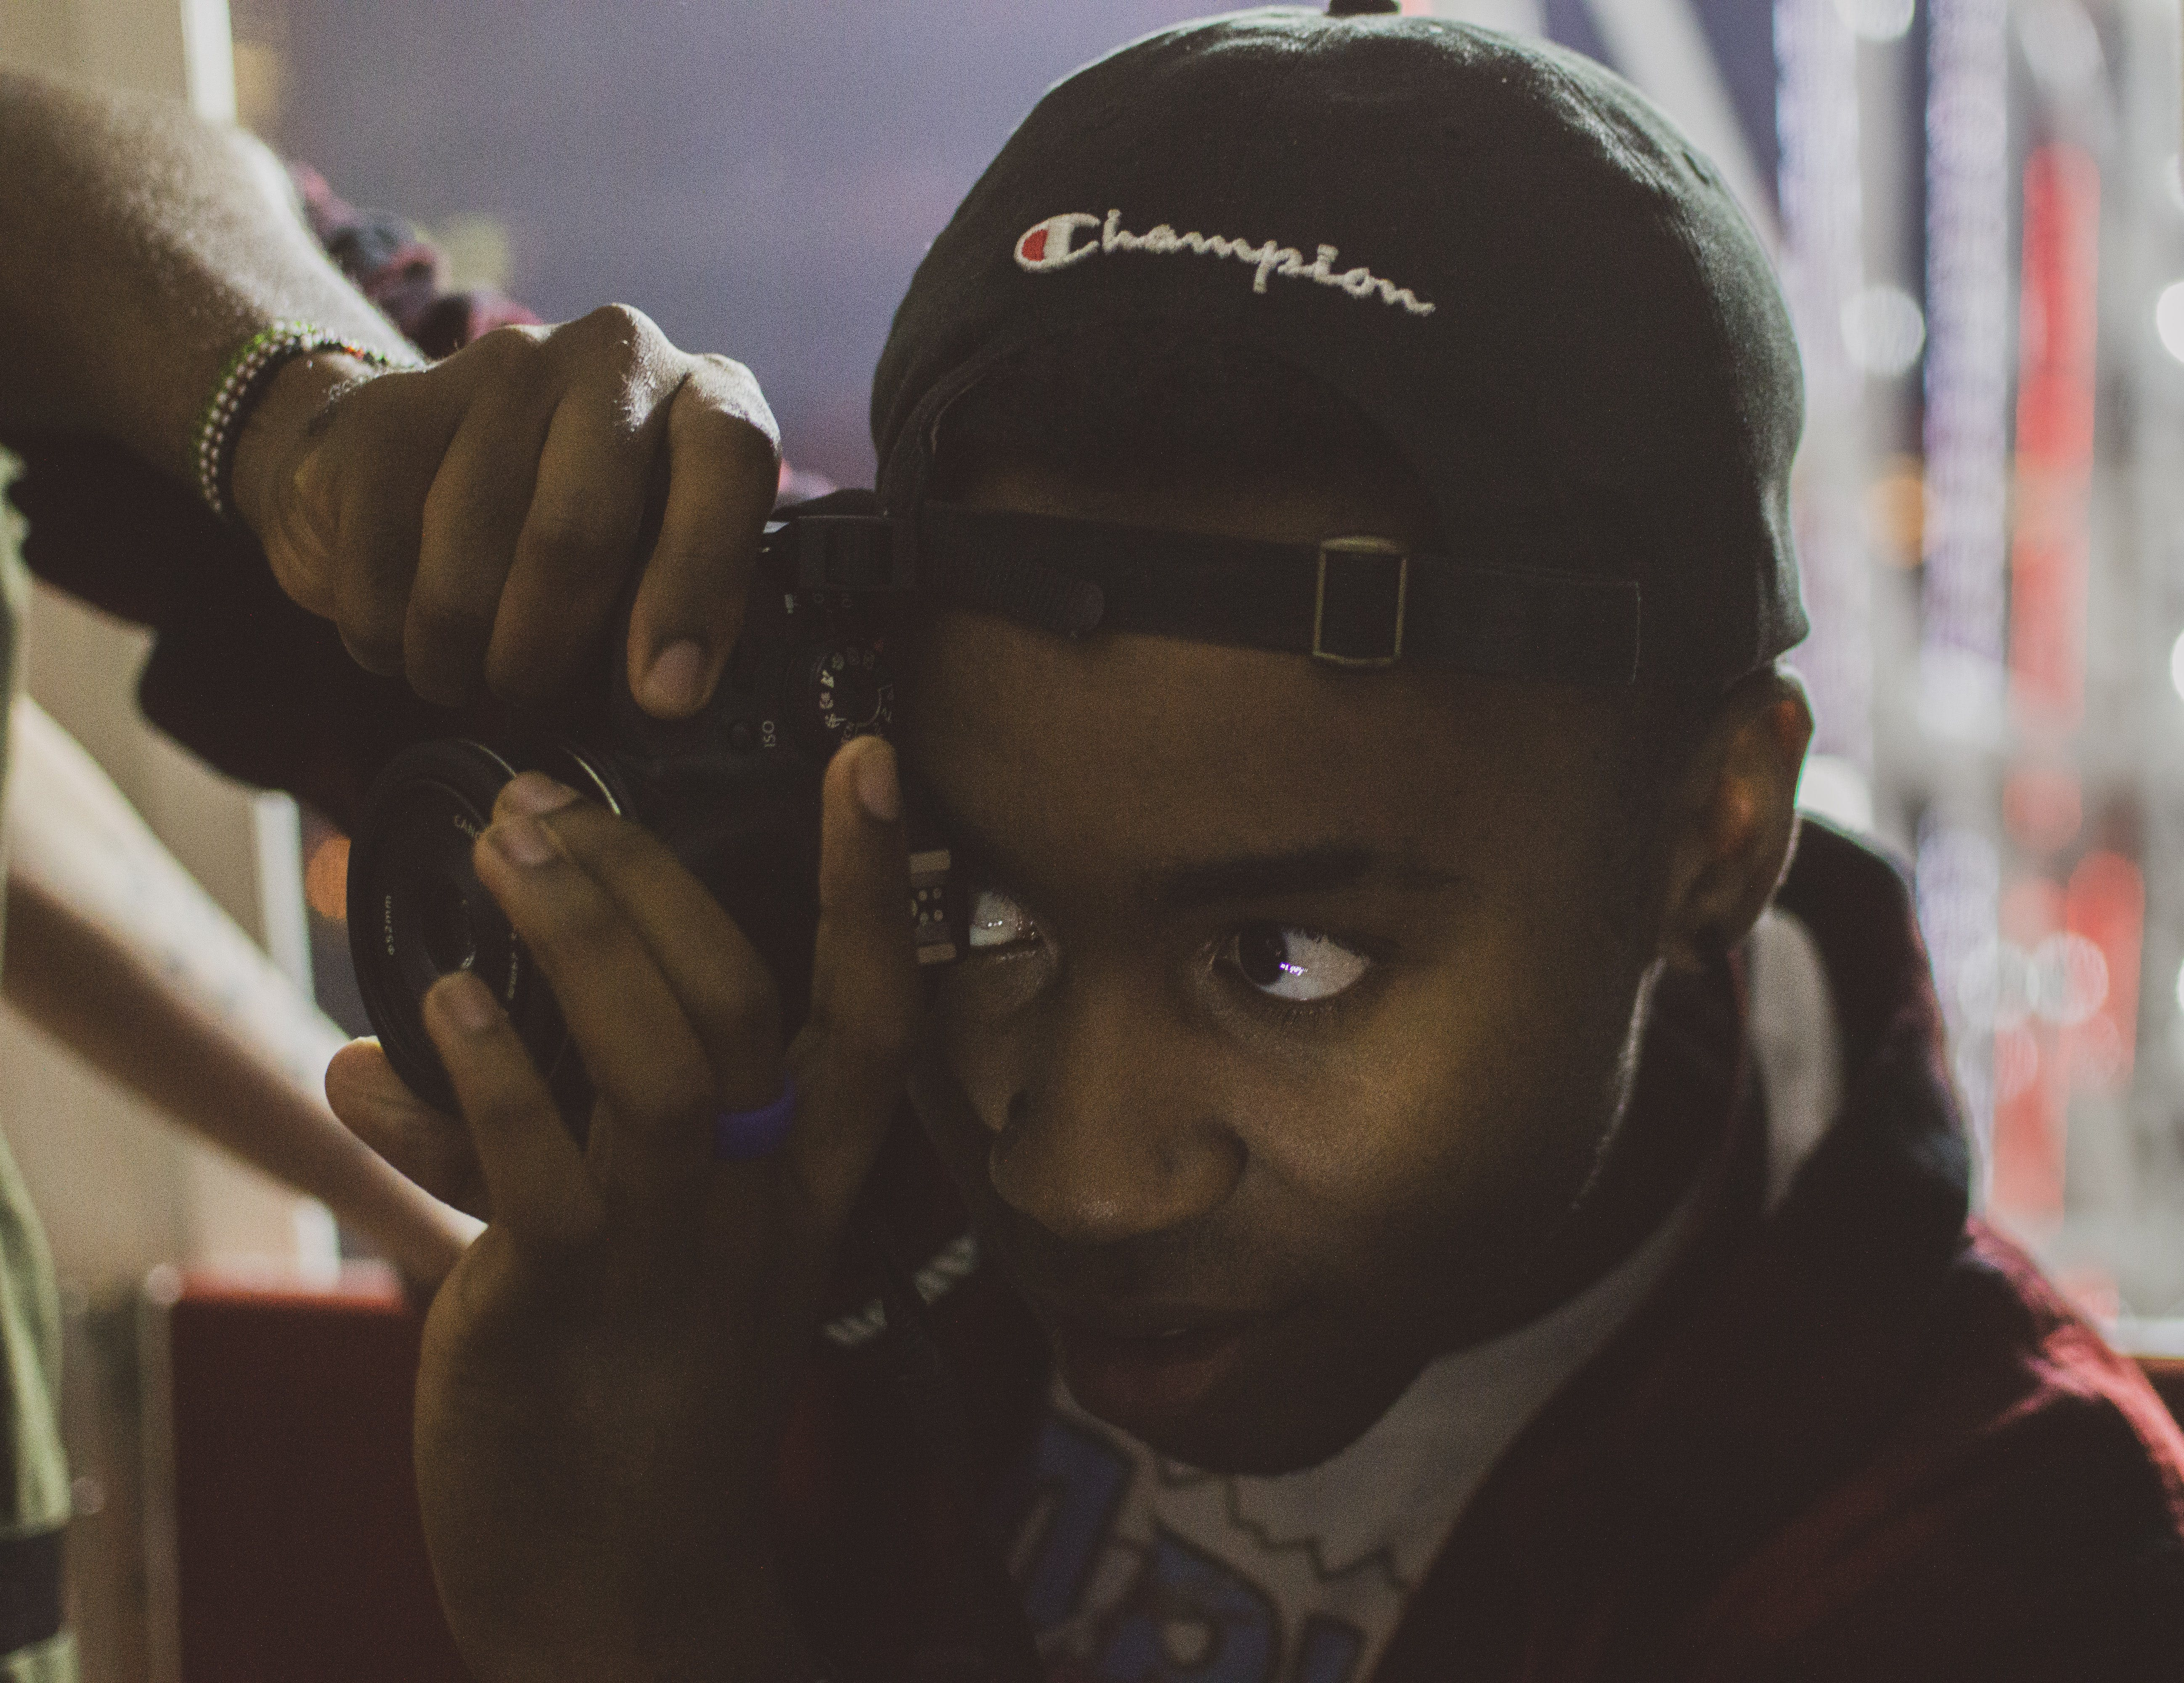 Person Holding Camera Wearing Black Champion Cap